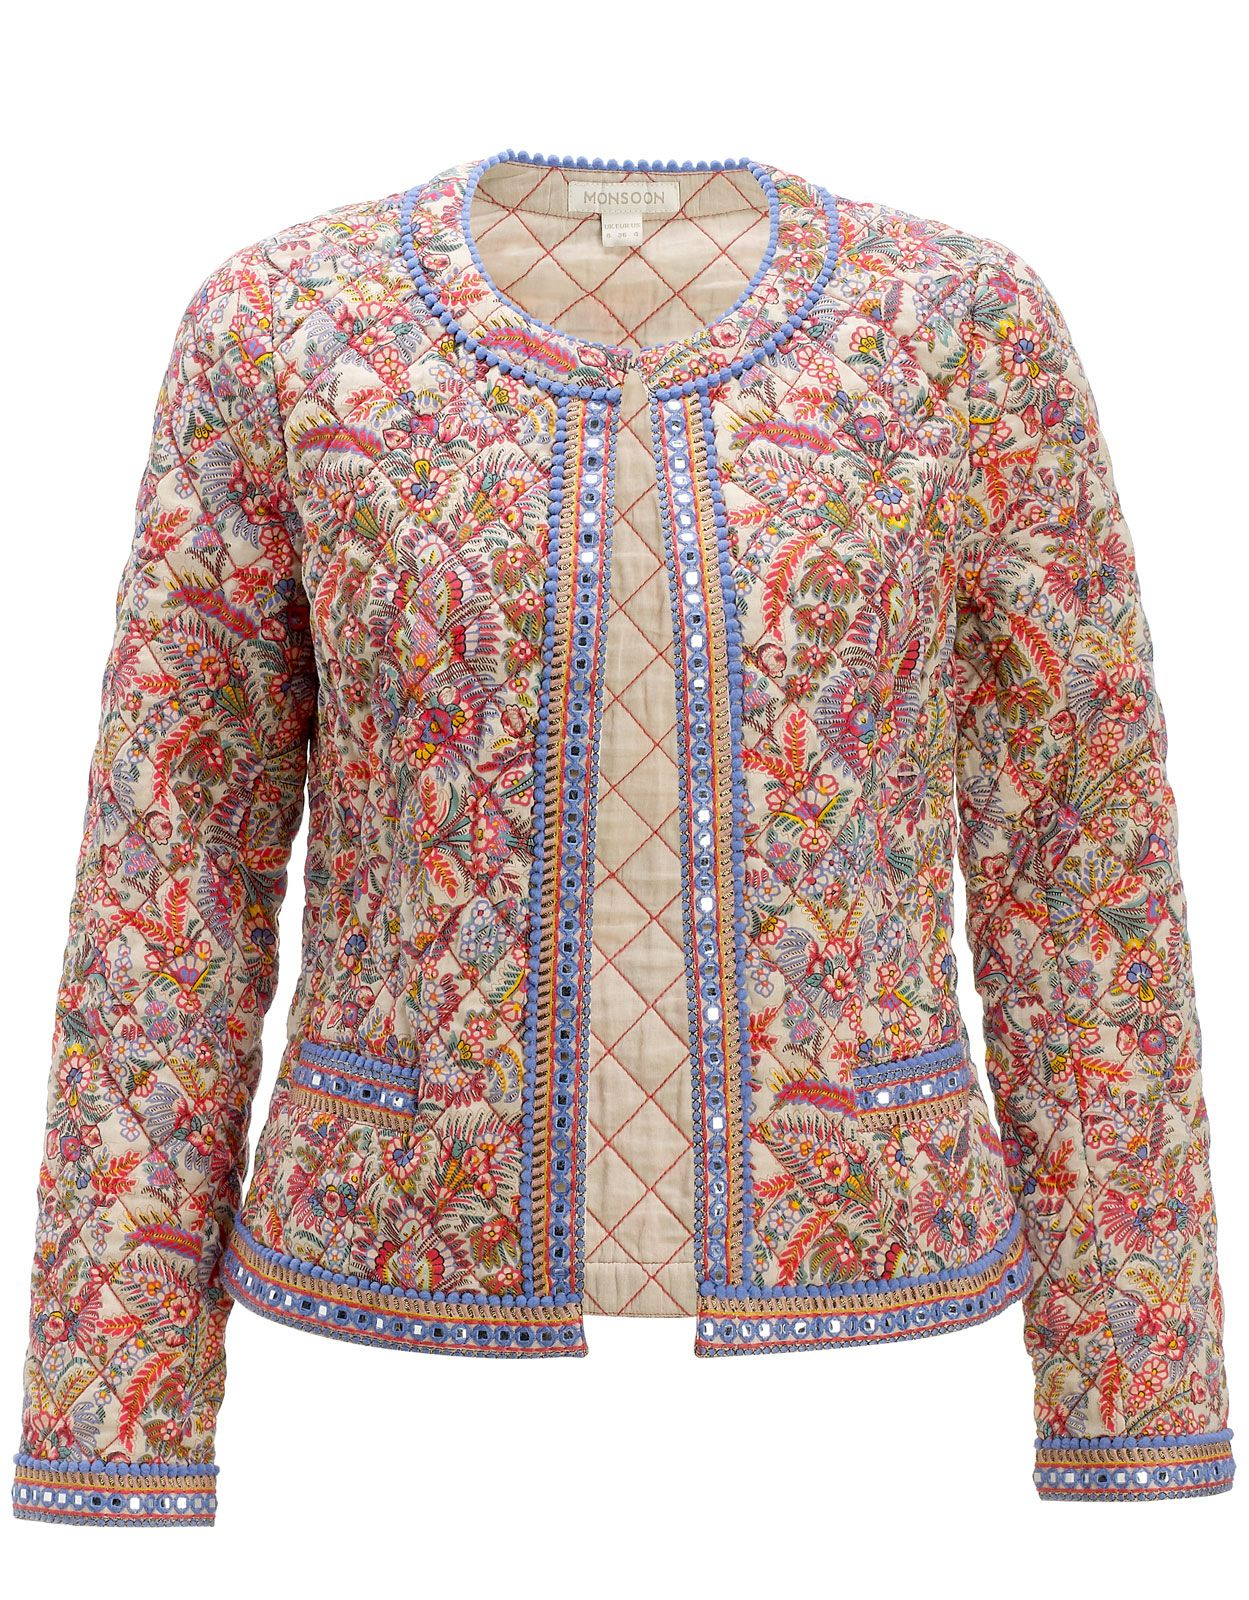 723d5c2842f2b Camilla Print Jacket, Monsoon, | Wear & Carry in 2019 | Fashion ...